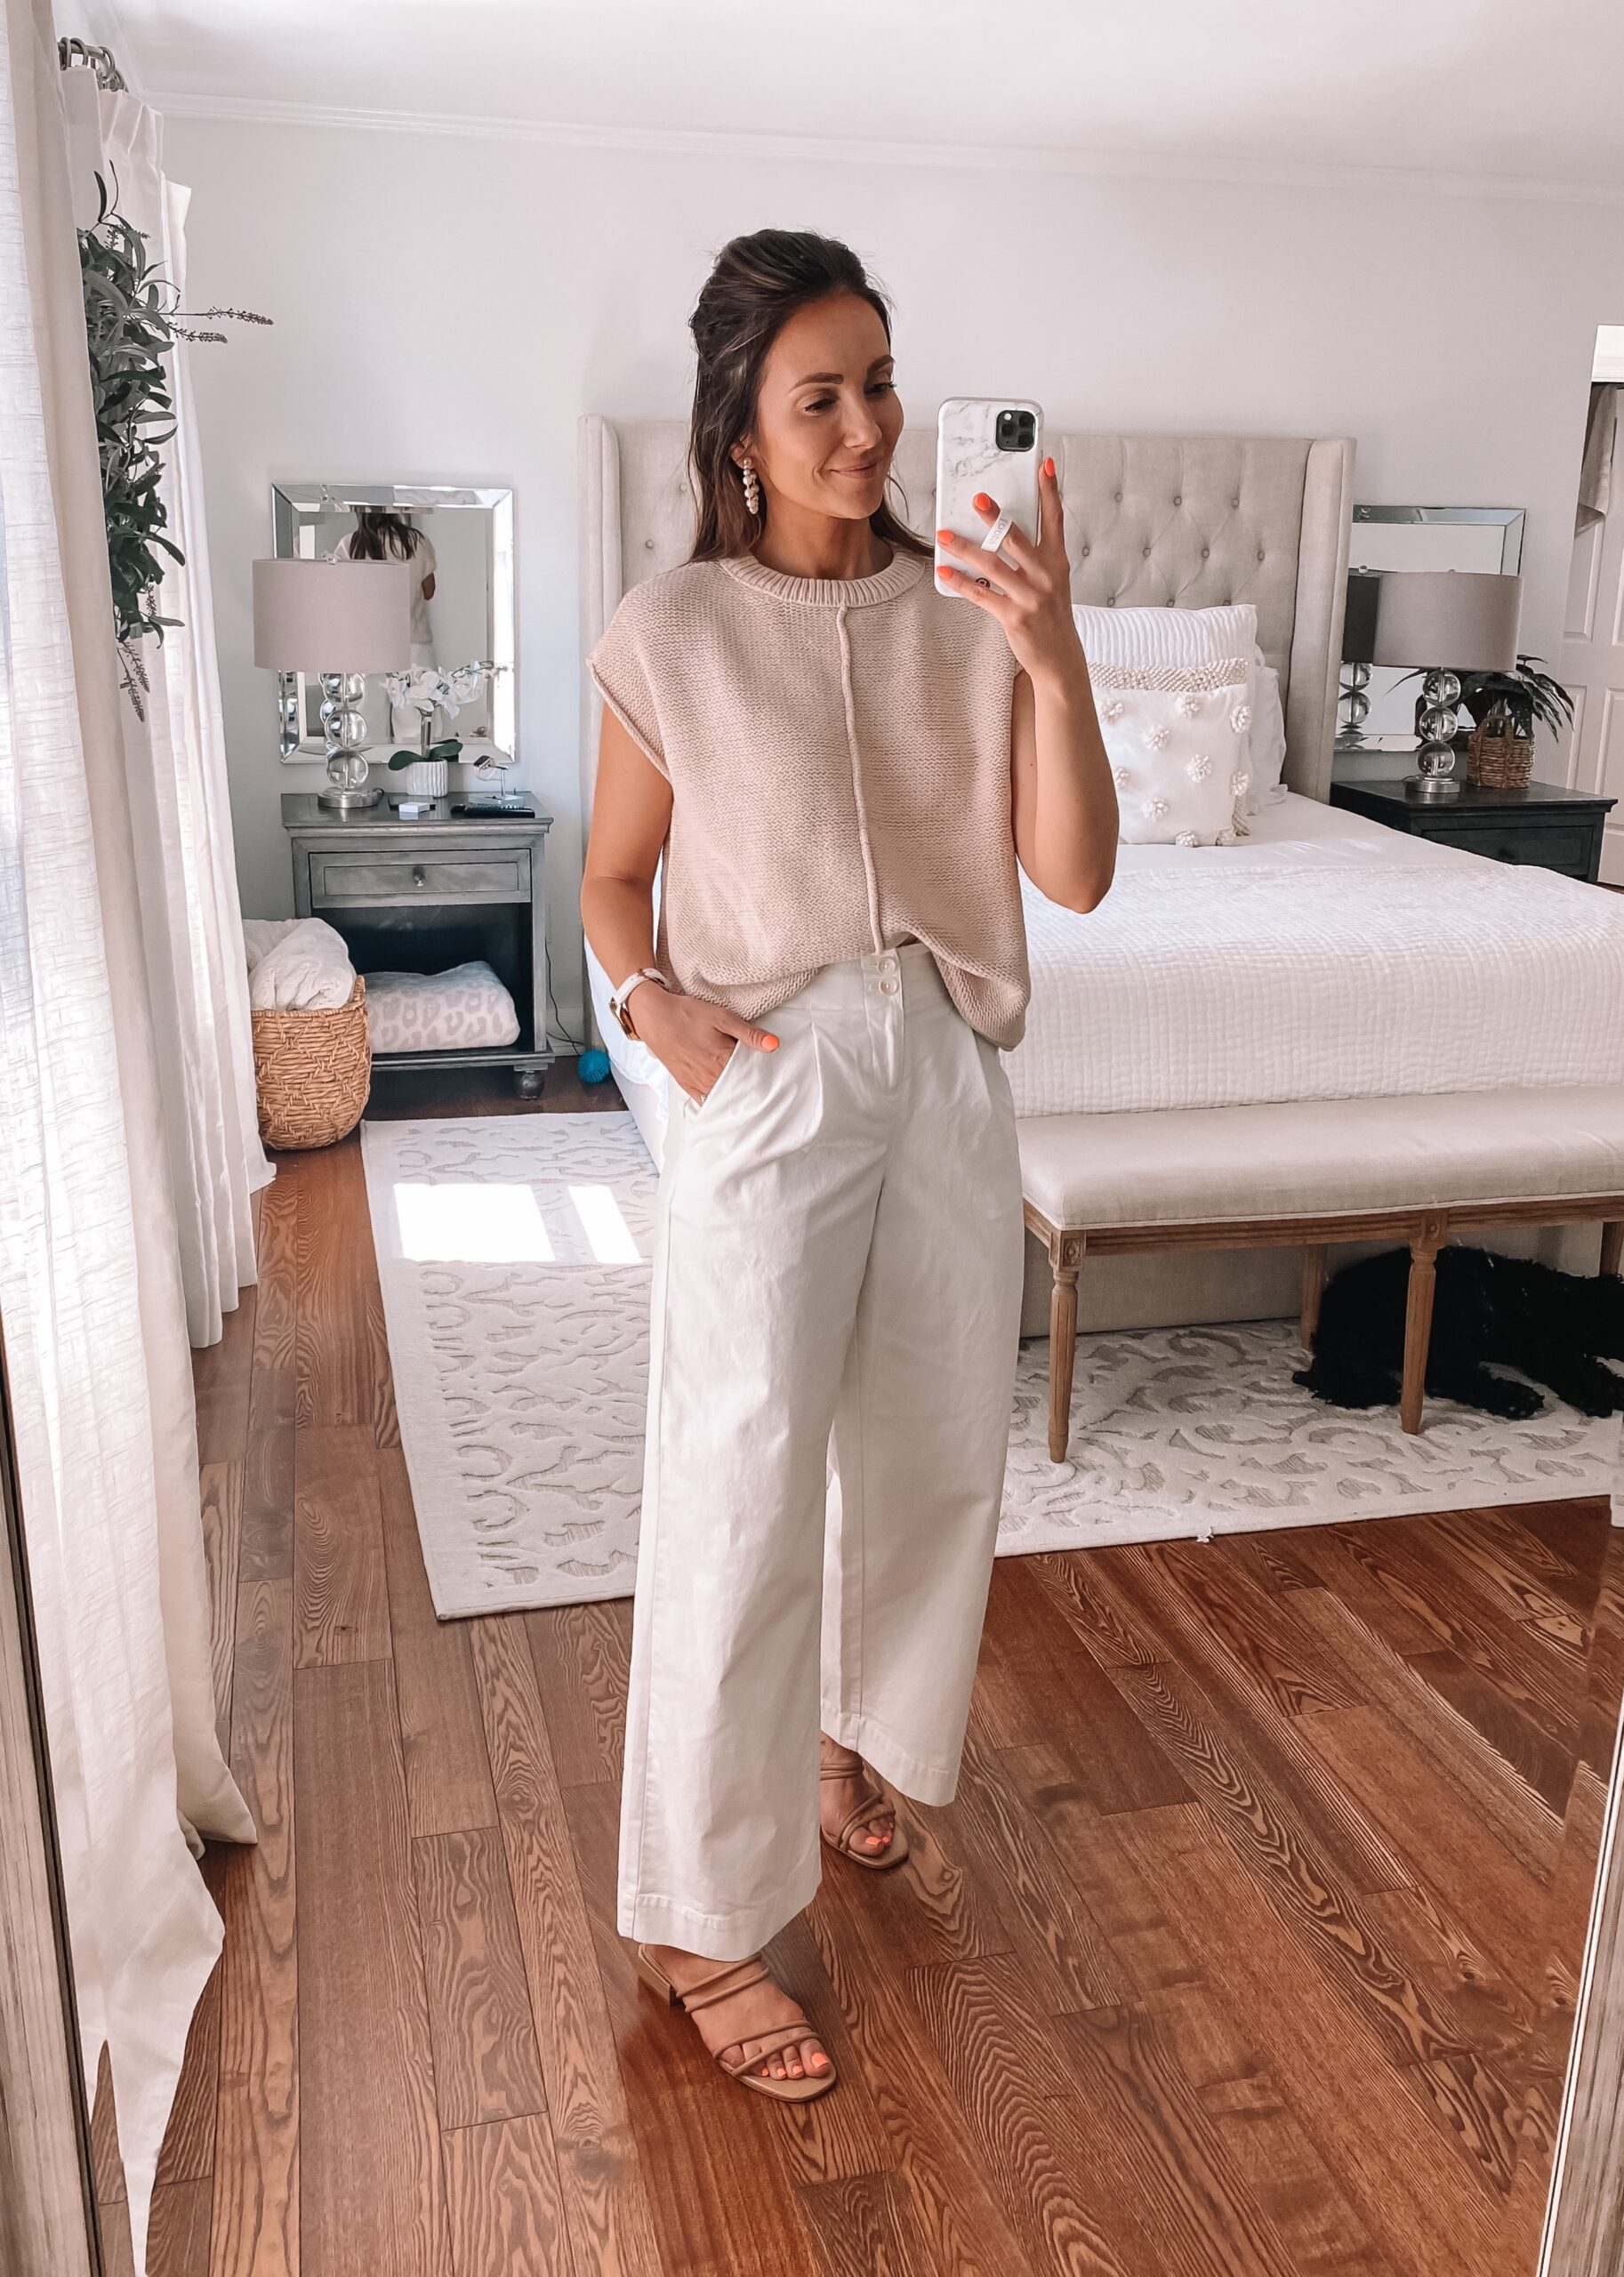 target style, target wide leg pants, target spring outfit